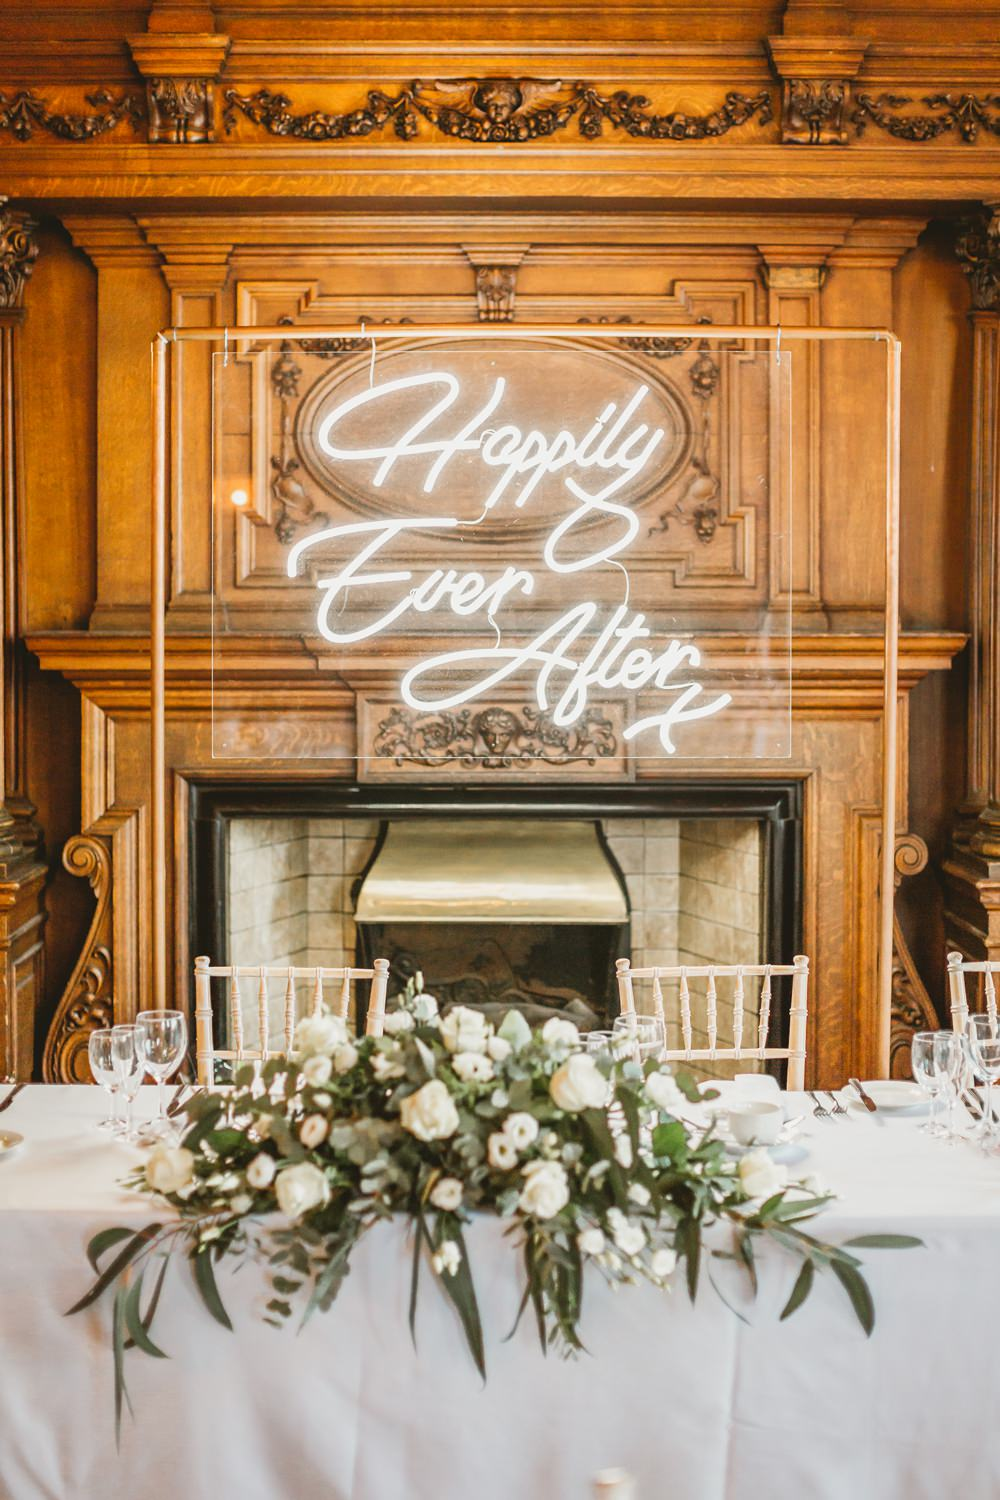 Neon Sign Backdrop Top Table Flowers York Minster Wedding Amy Lou Photography